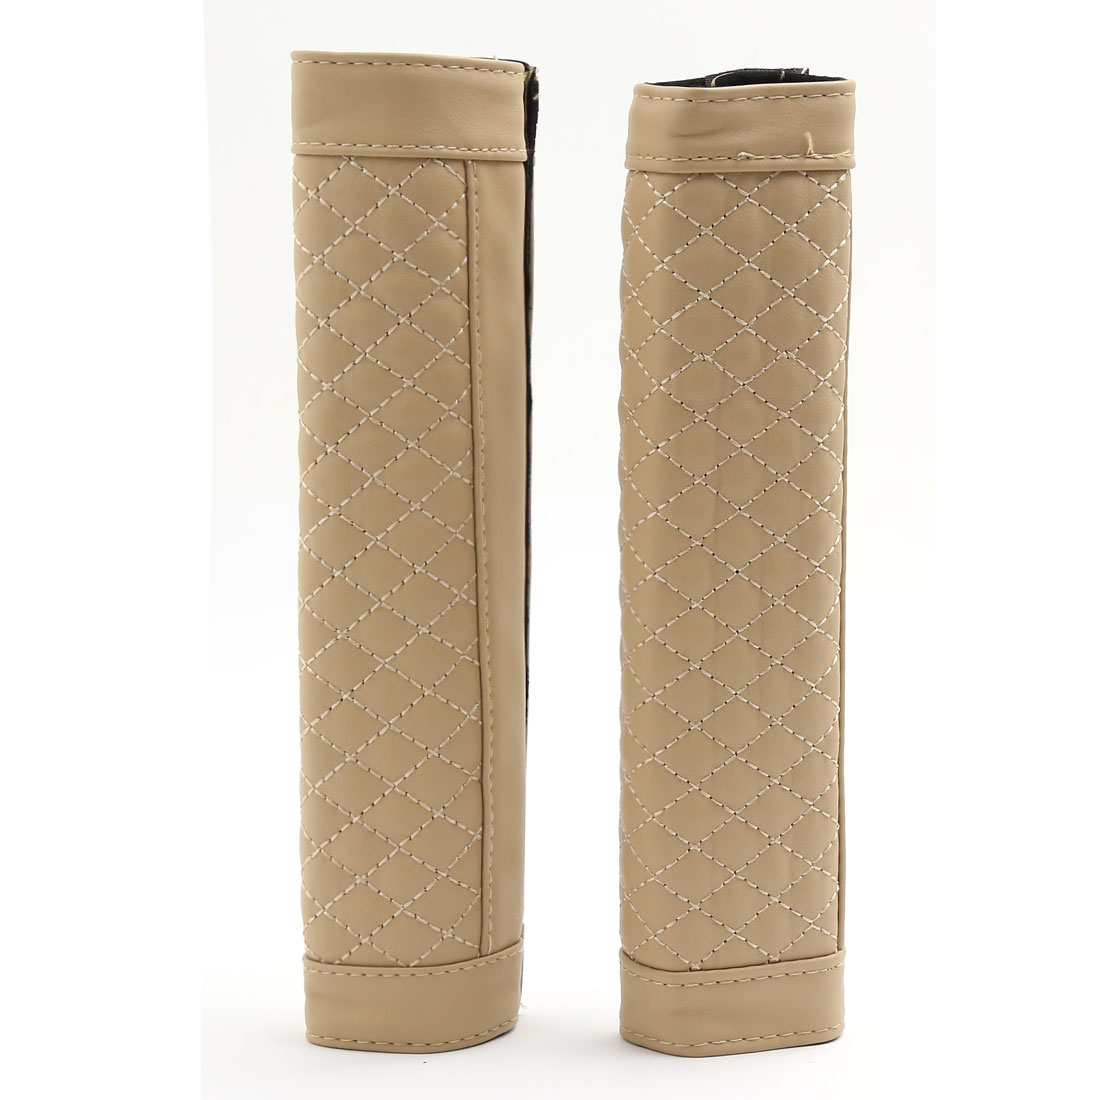 2 Pcs Beige Antislip Car Safety Seat Belt Seatbelt Cover Pad Sleeve 23cm Length